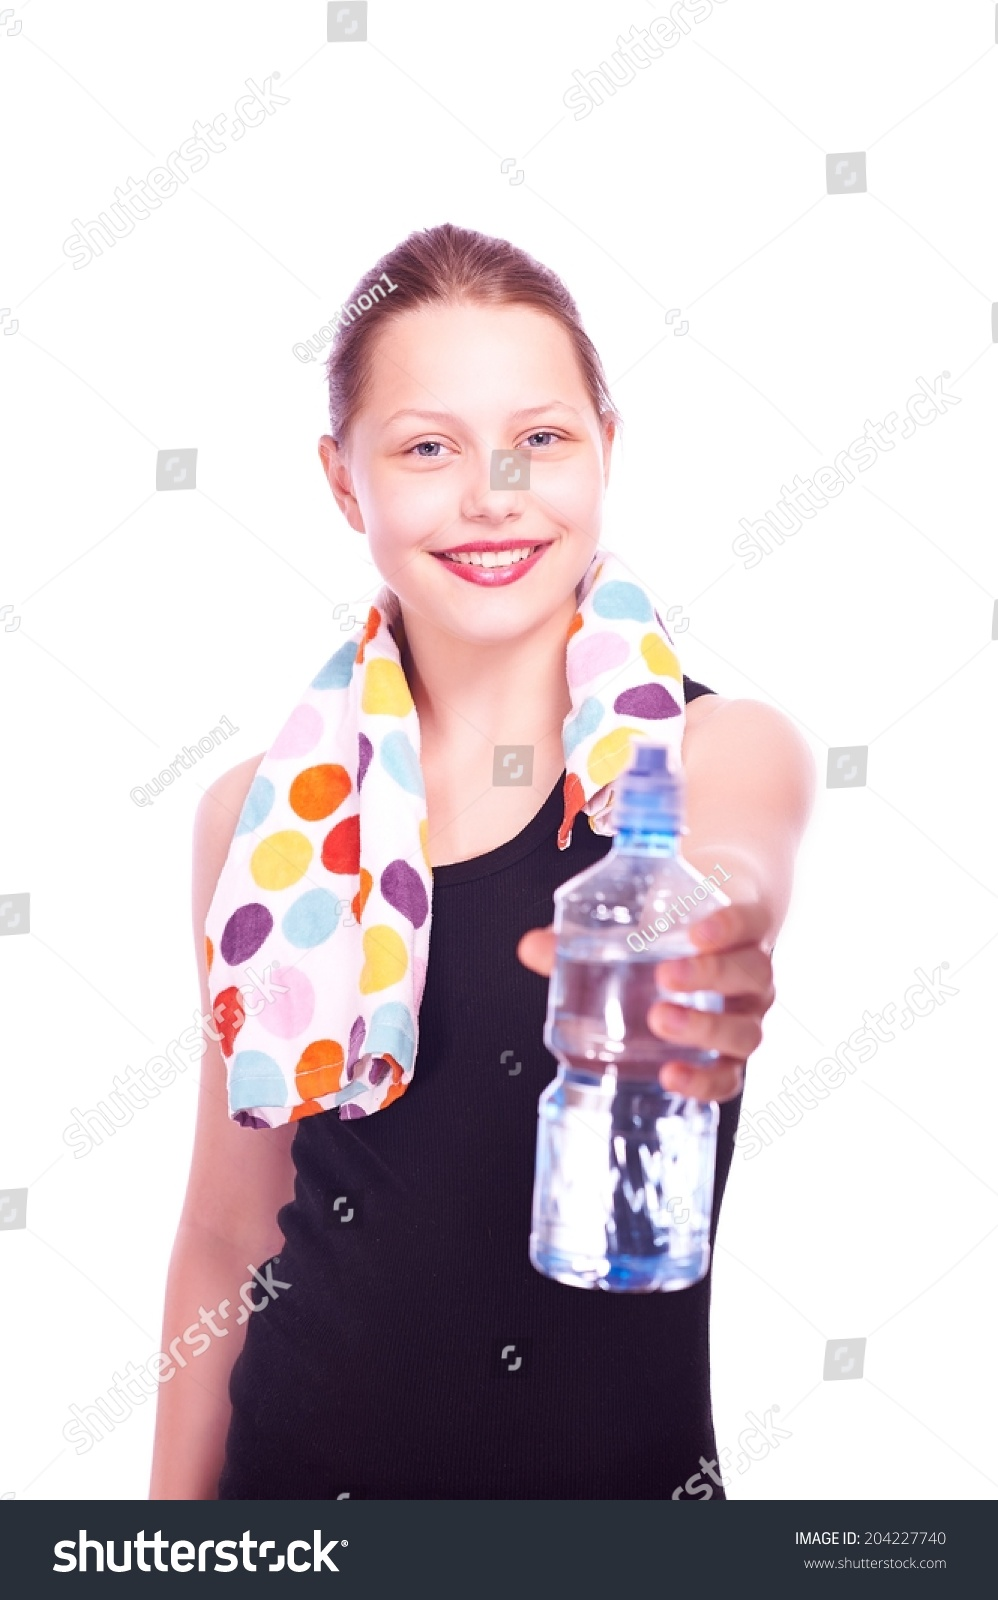 Happy Teen By Crumbling Wall Stock Image: Cute Happy Teen Girl Staying Towel Stock Photo 204227740